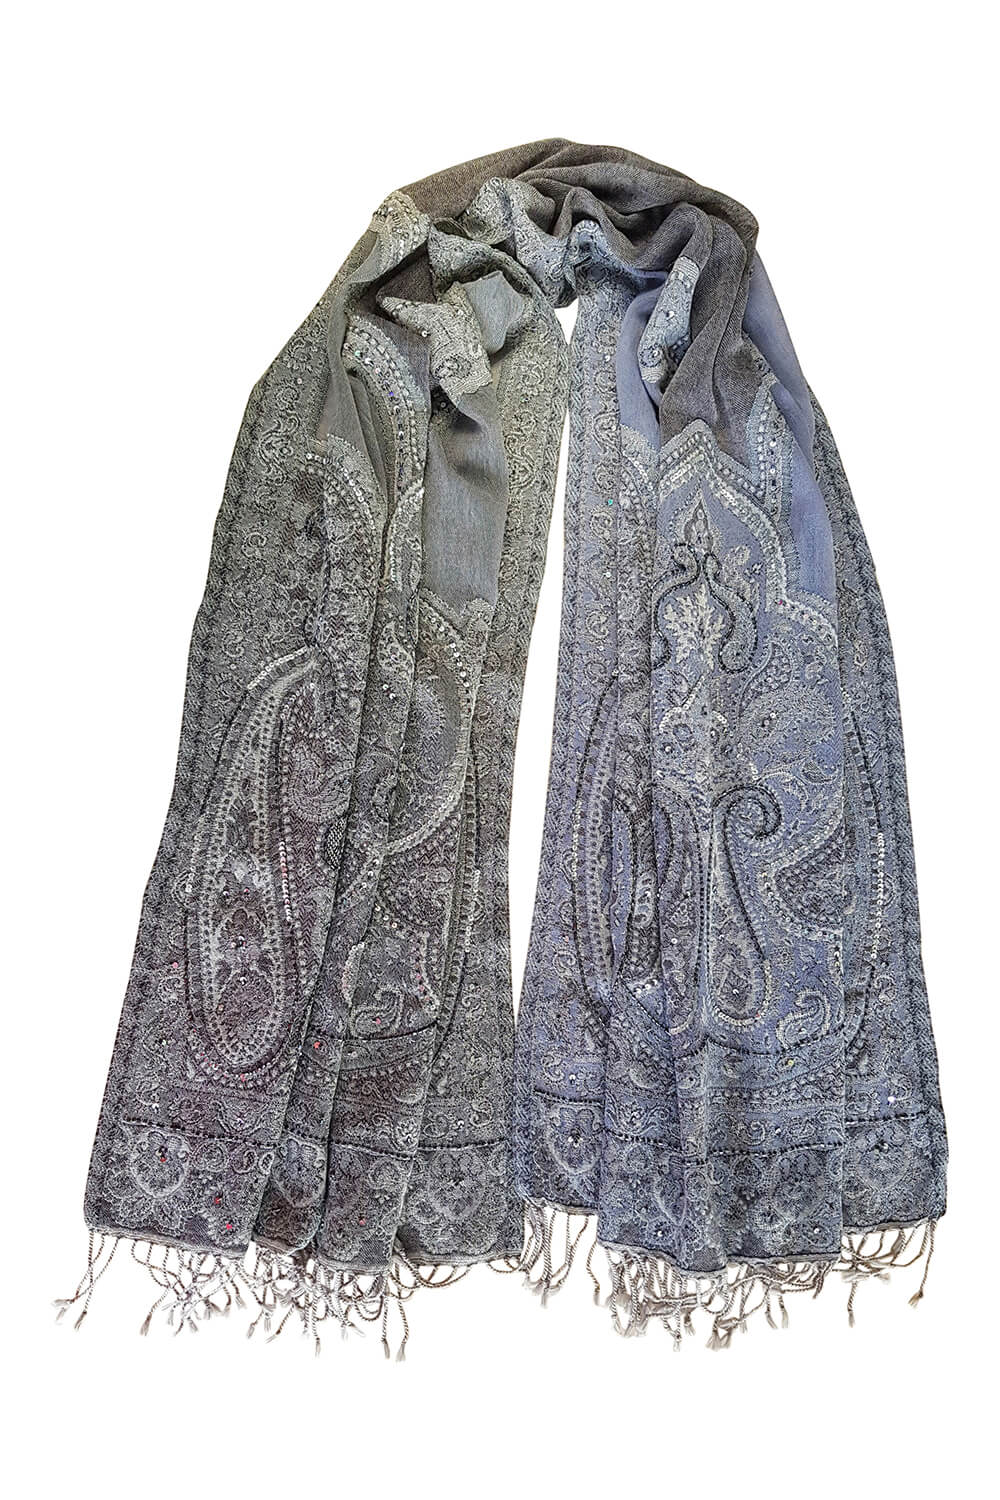 wool pashmina with paisley print in grey, mauve and beige